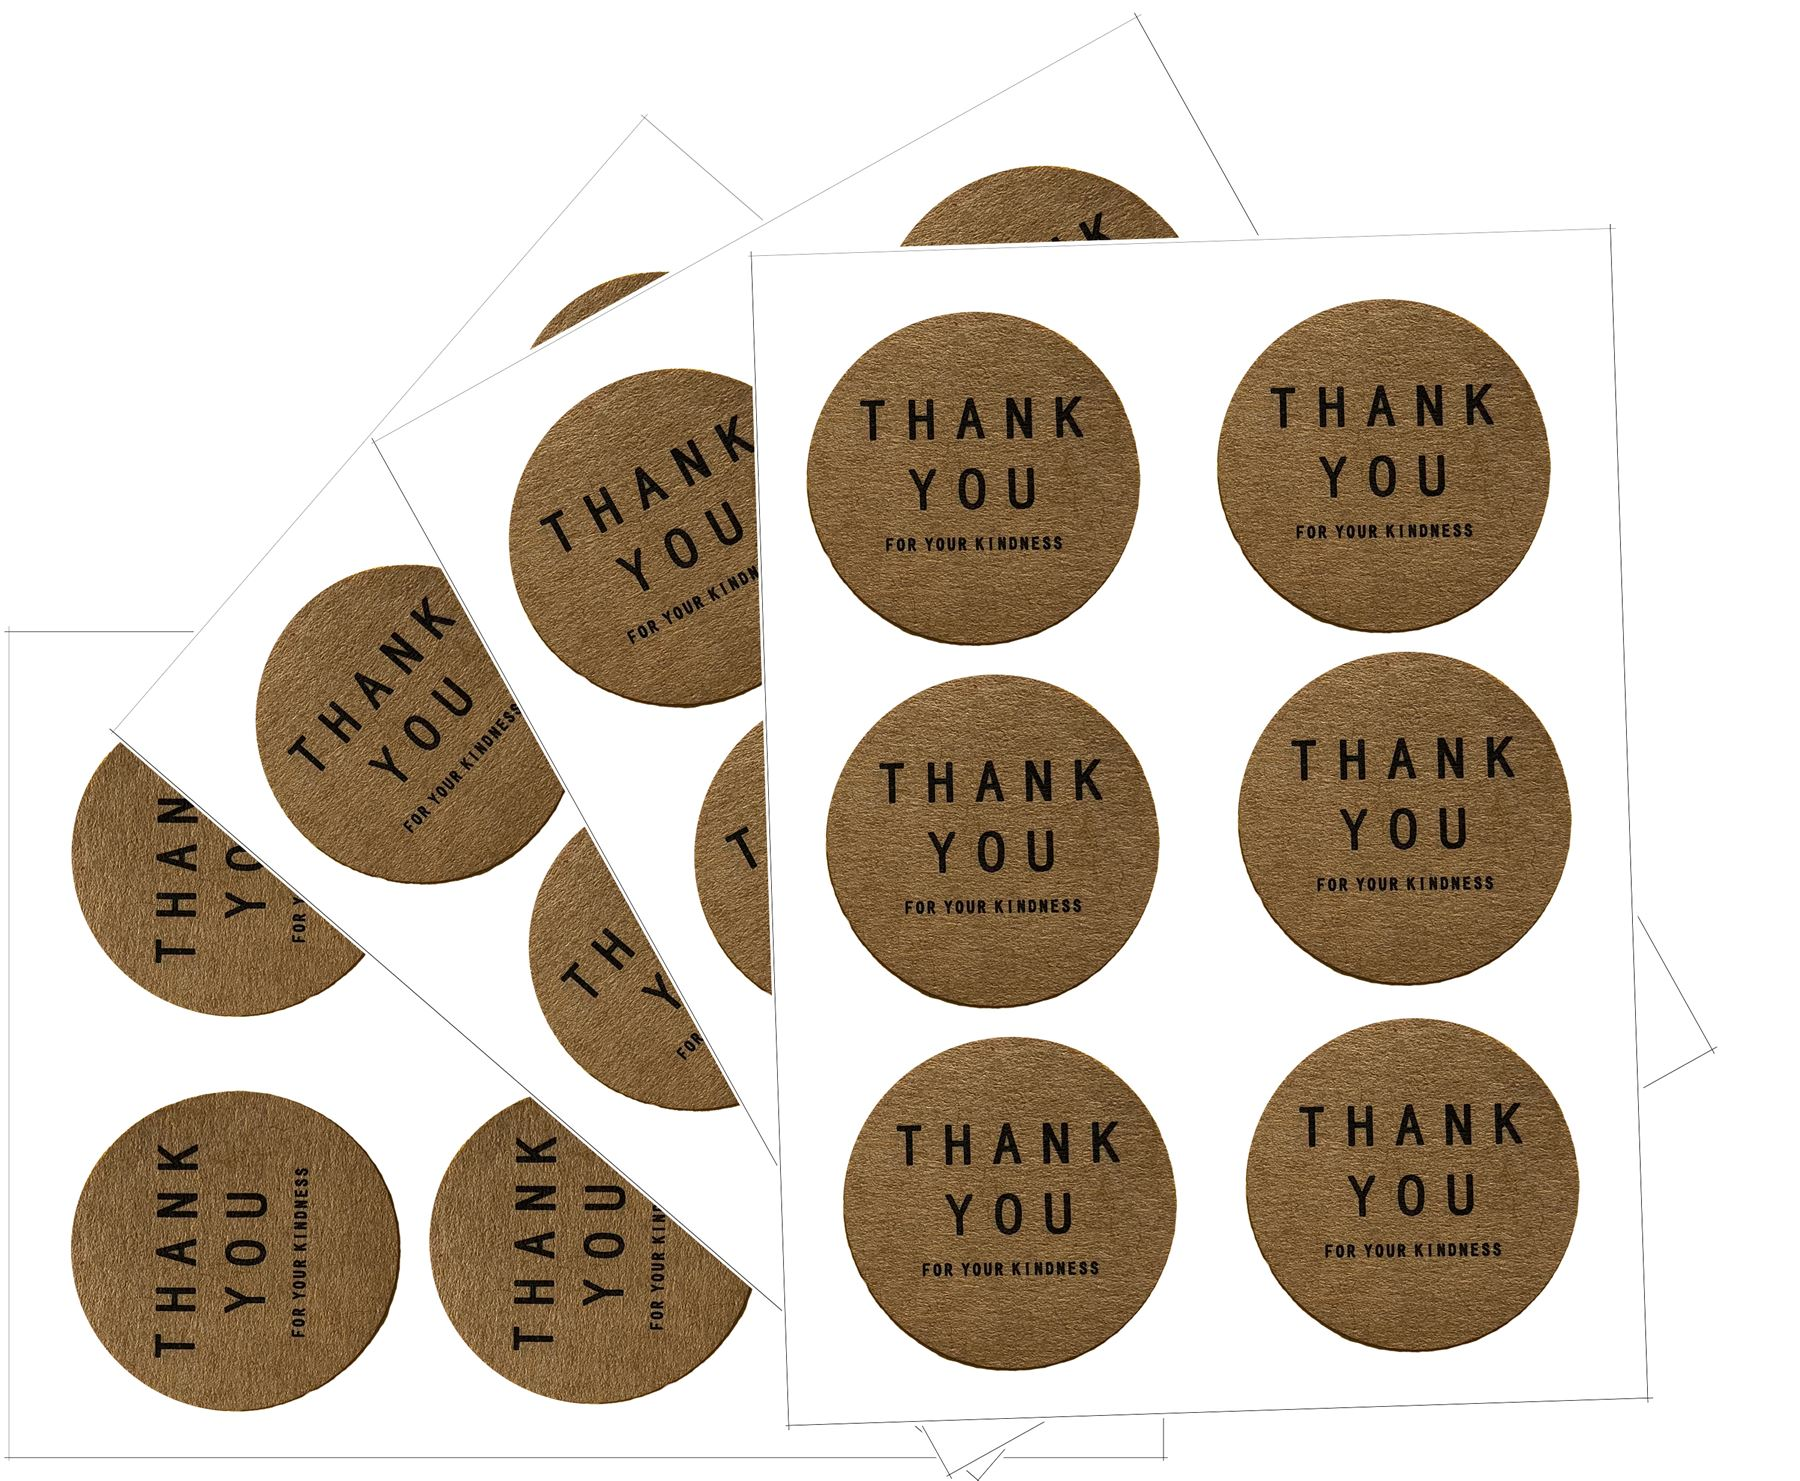 Thank-you-For-Your-Kindness-Teacher-Tokens-Stickers-Packaging-Gift-Tags